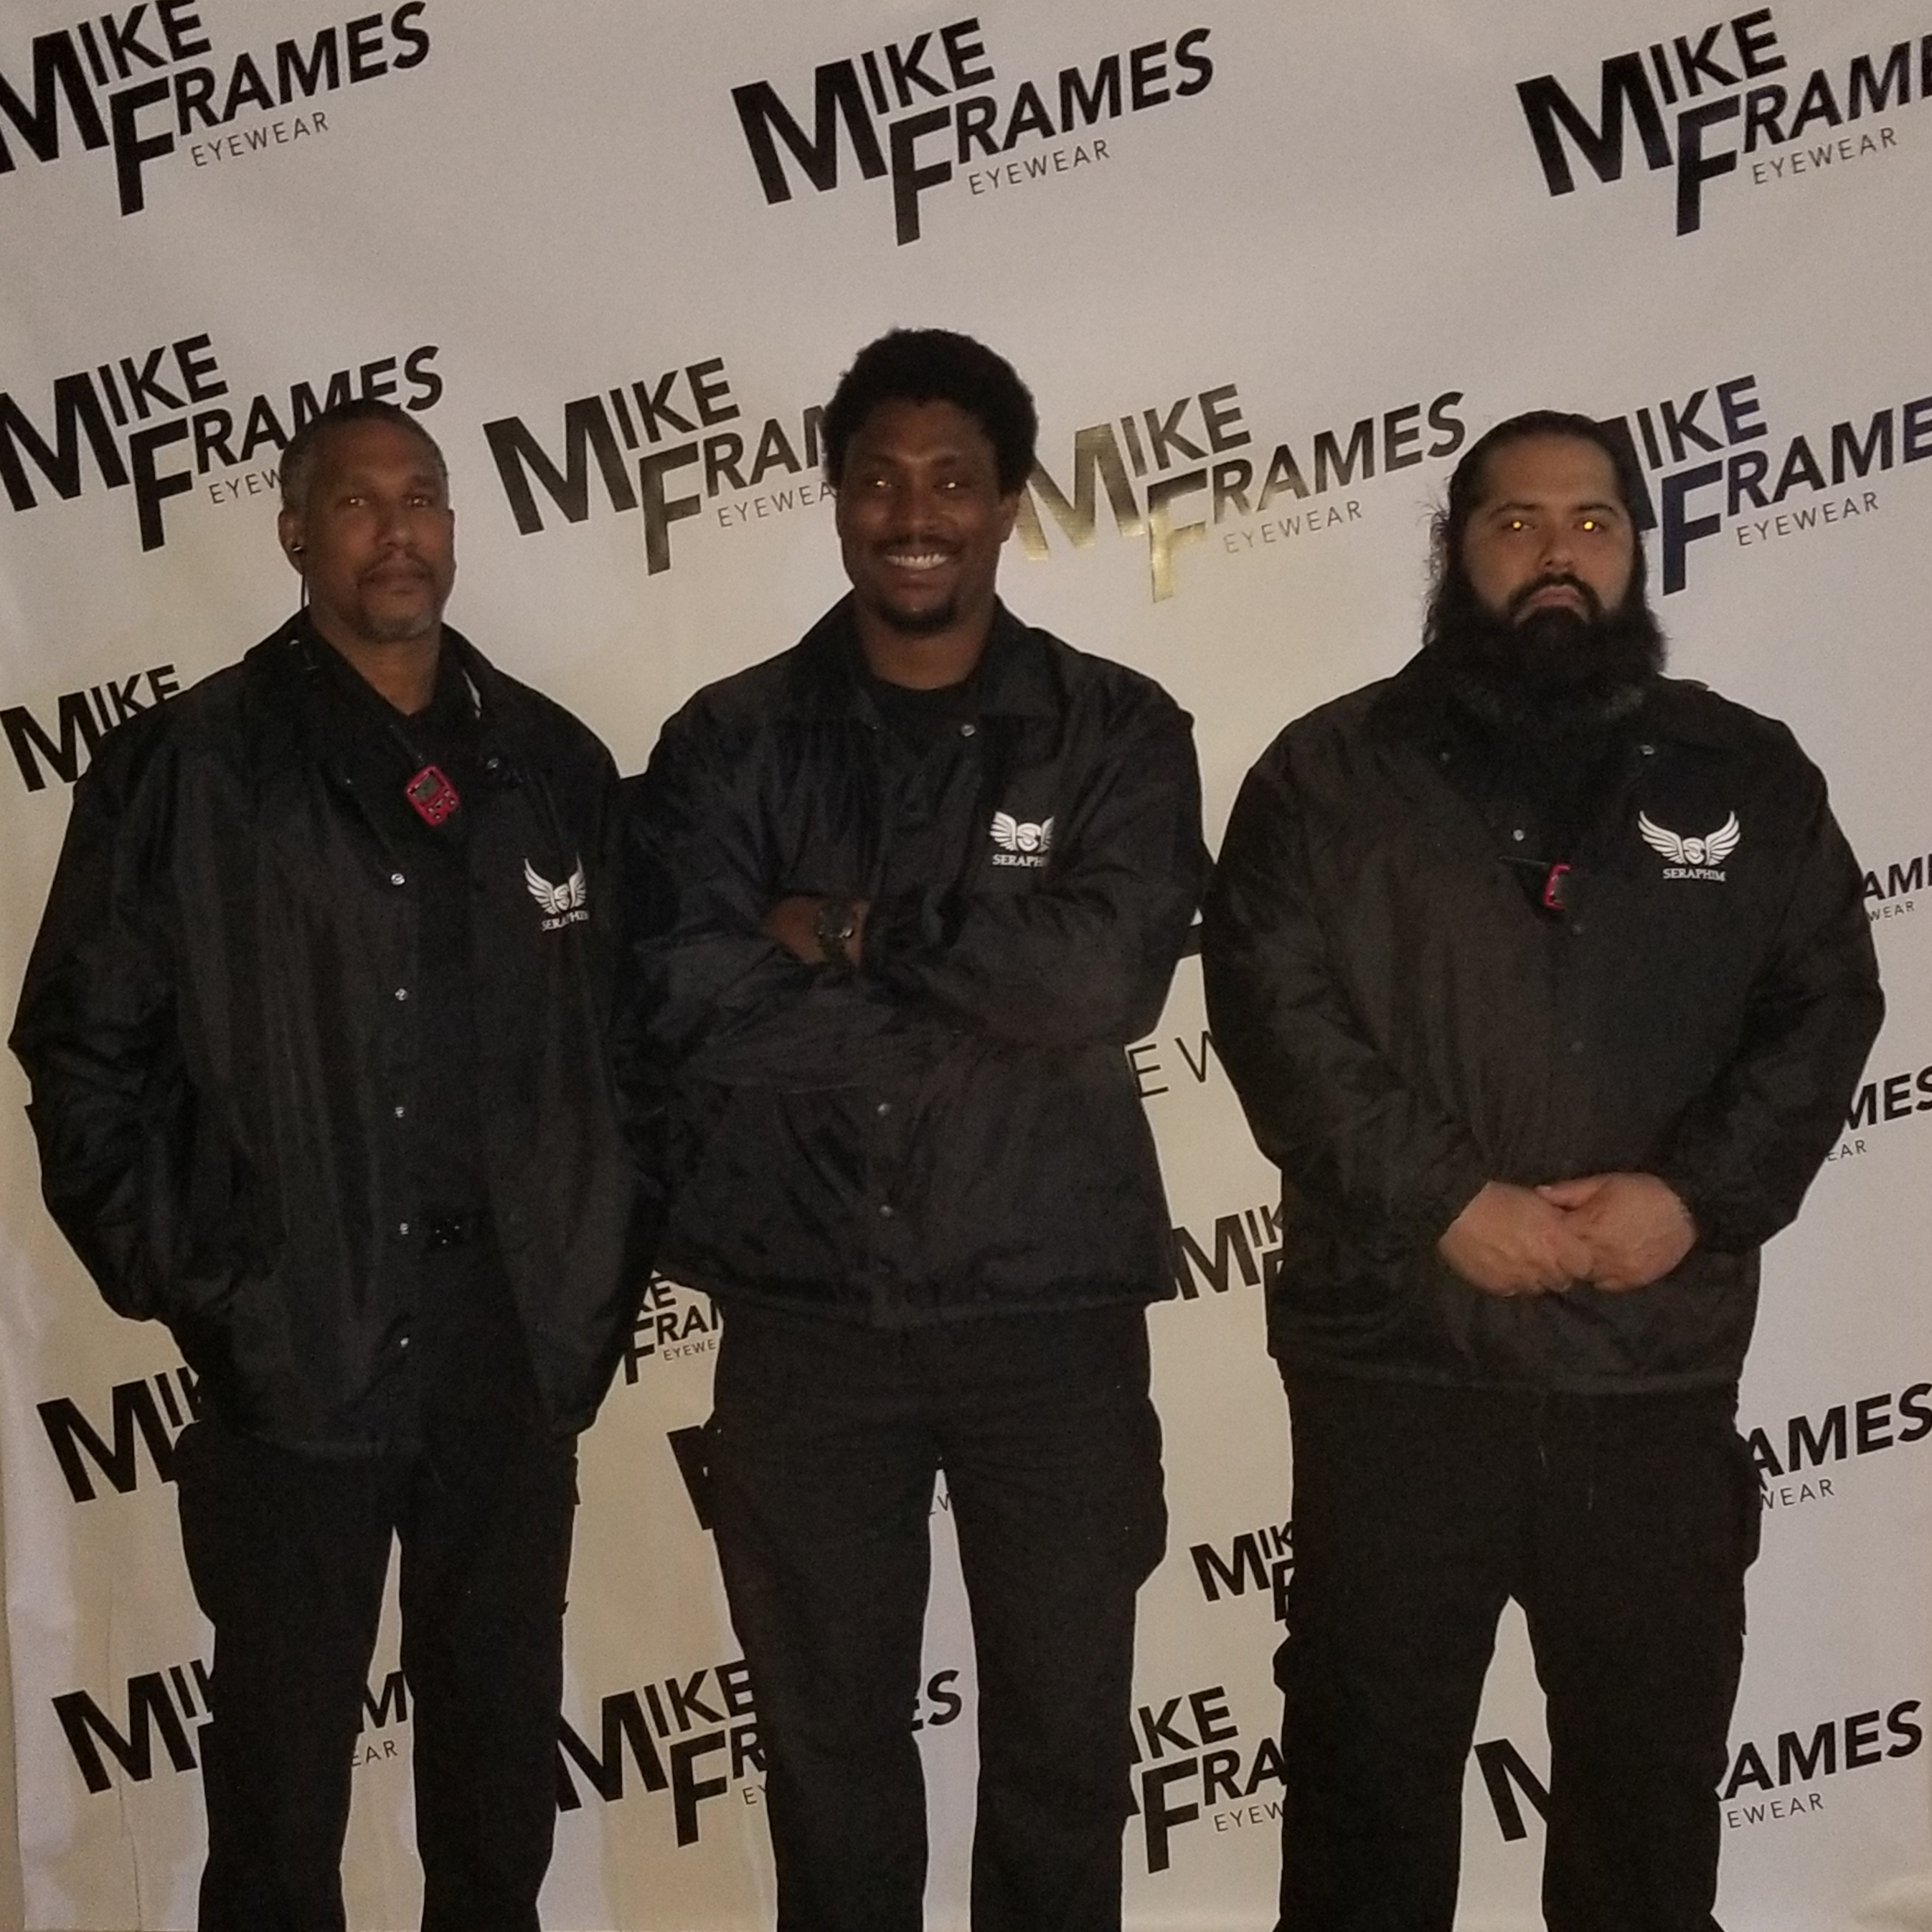 Mike James Frames Event